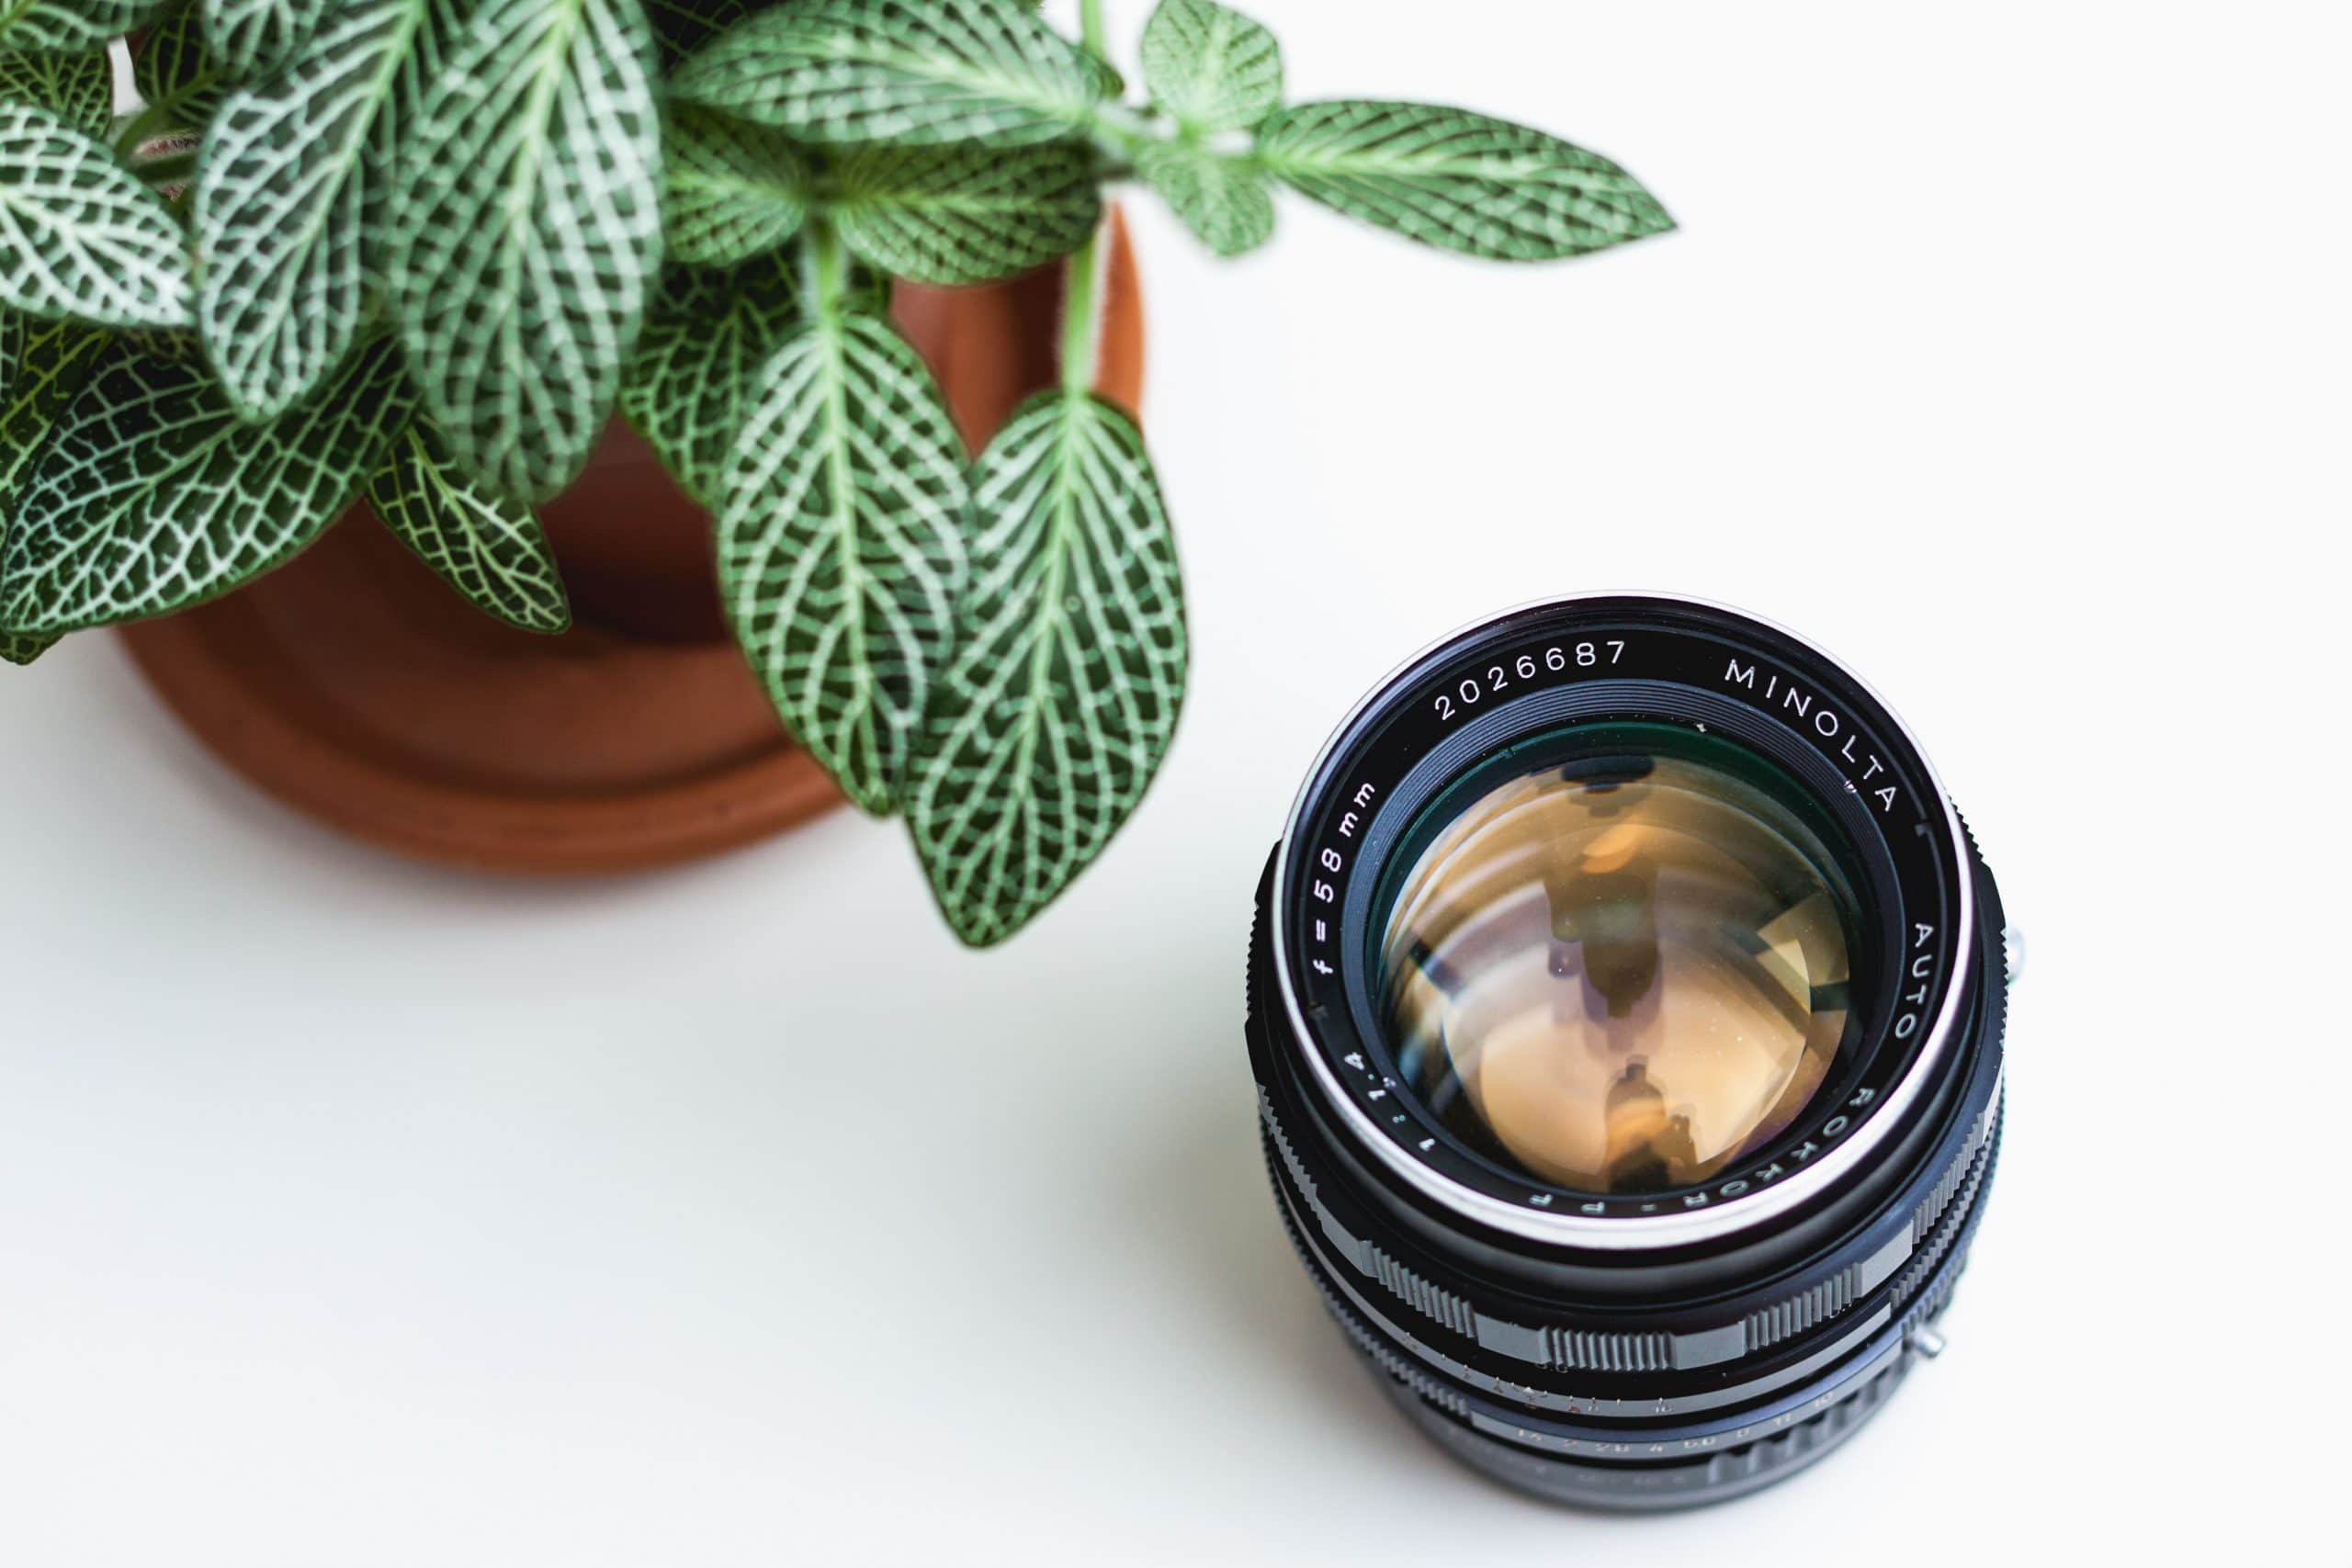 Cleaning a camera lens